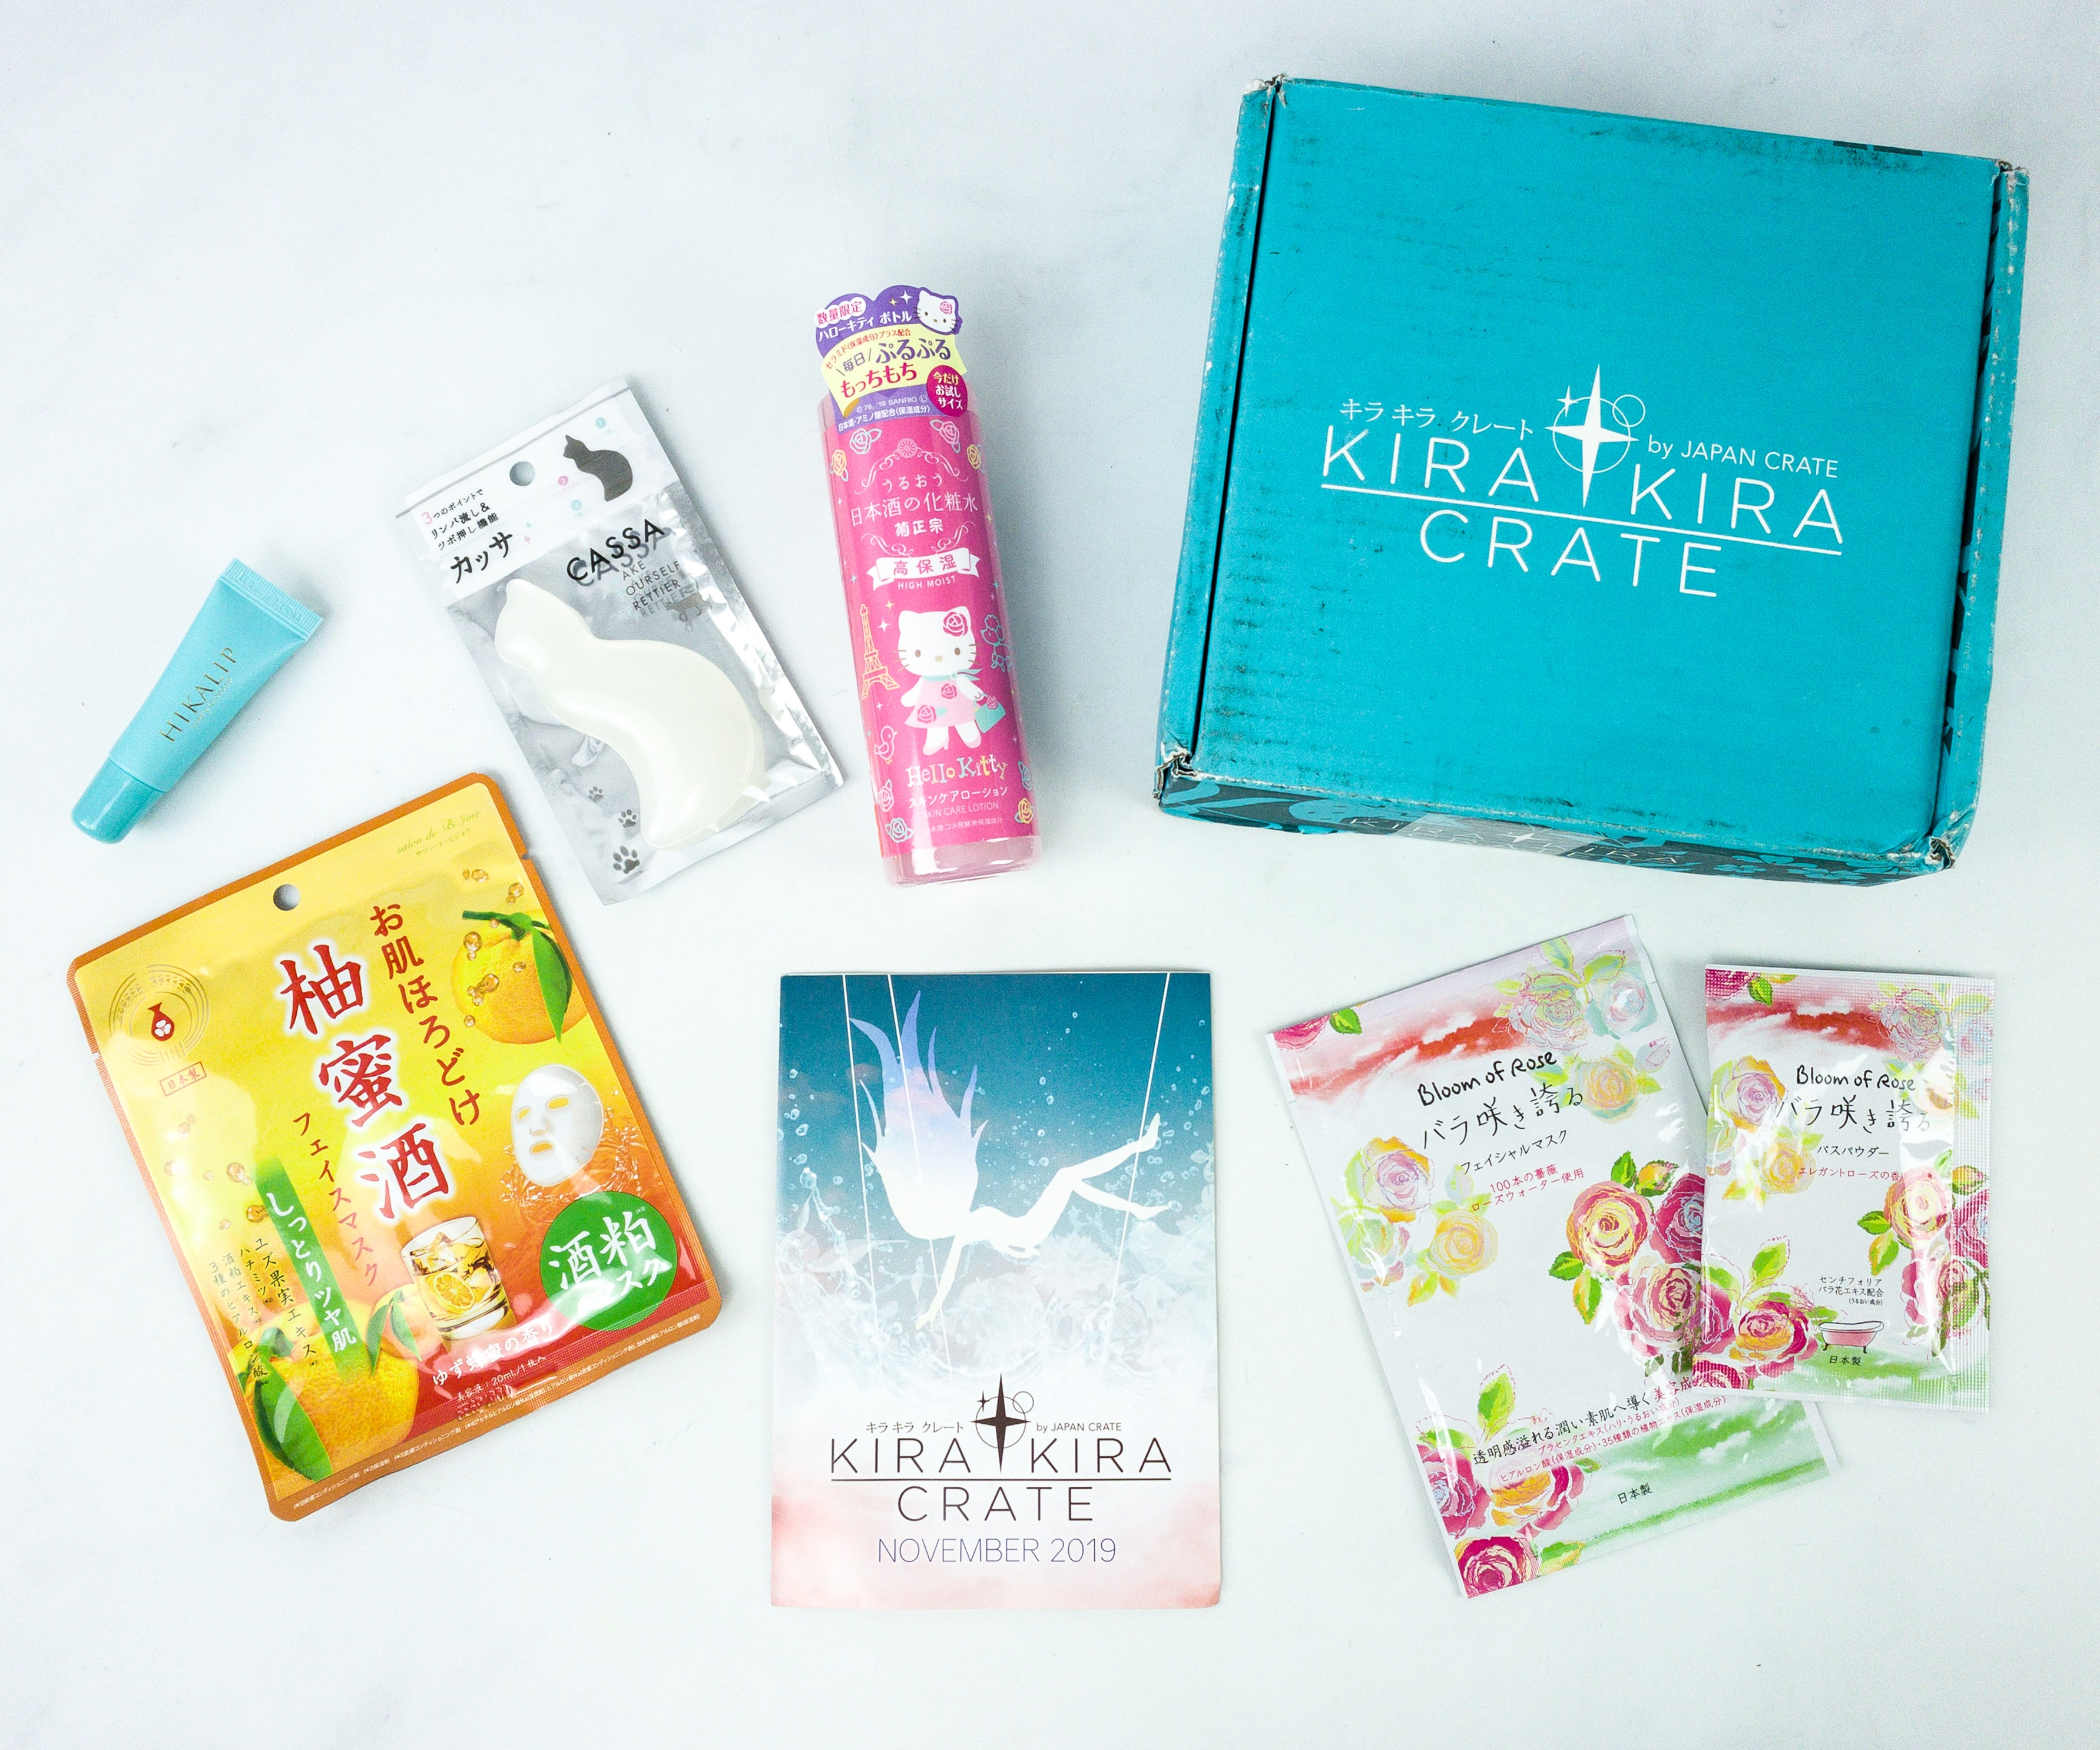 Kira Kira Crate November 2019 Subscription Box Review + Coupon